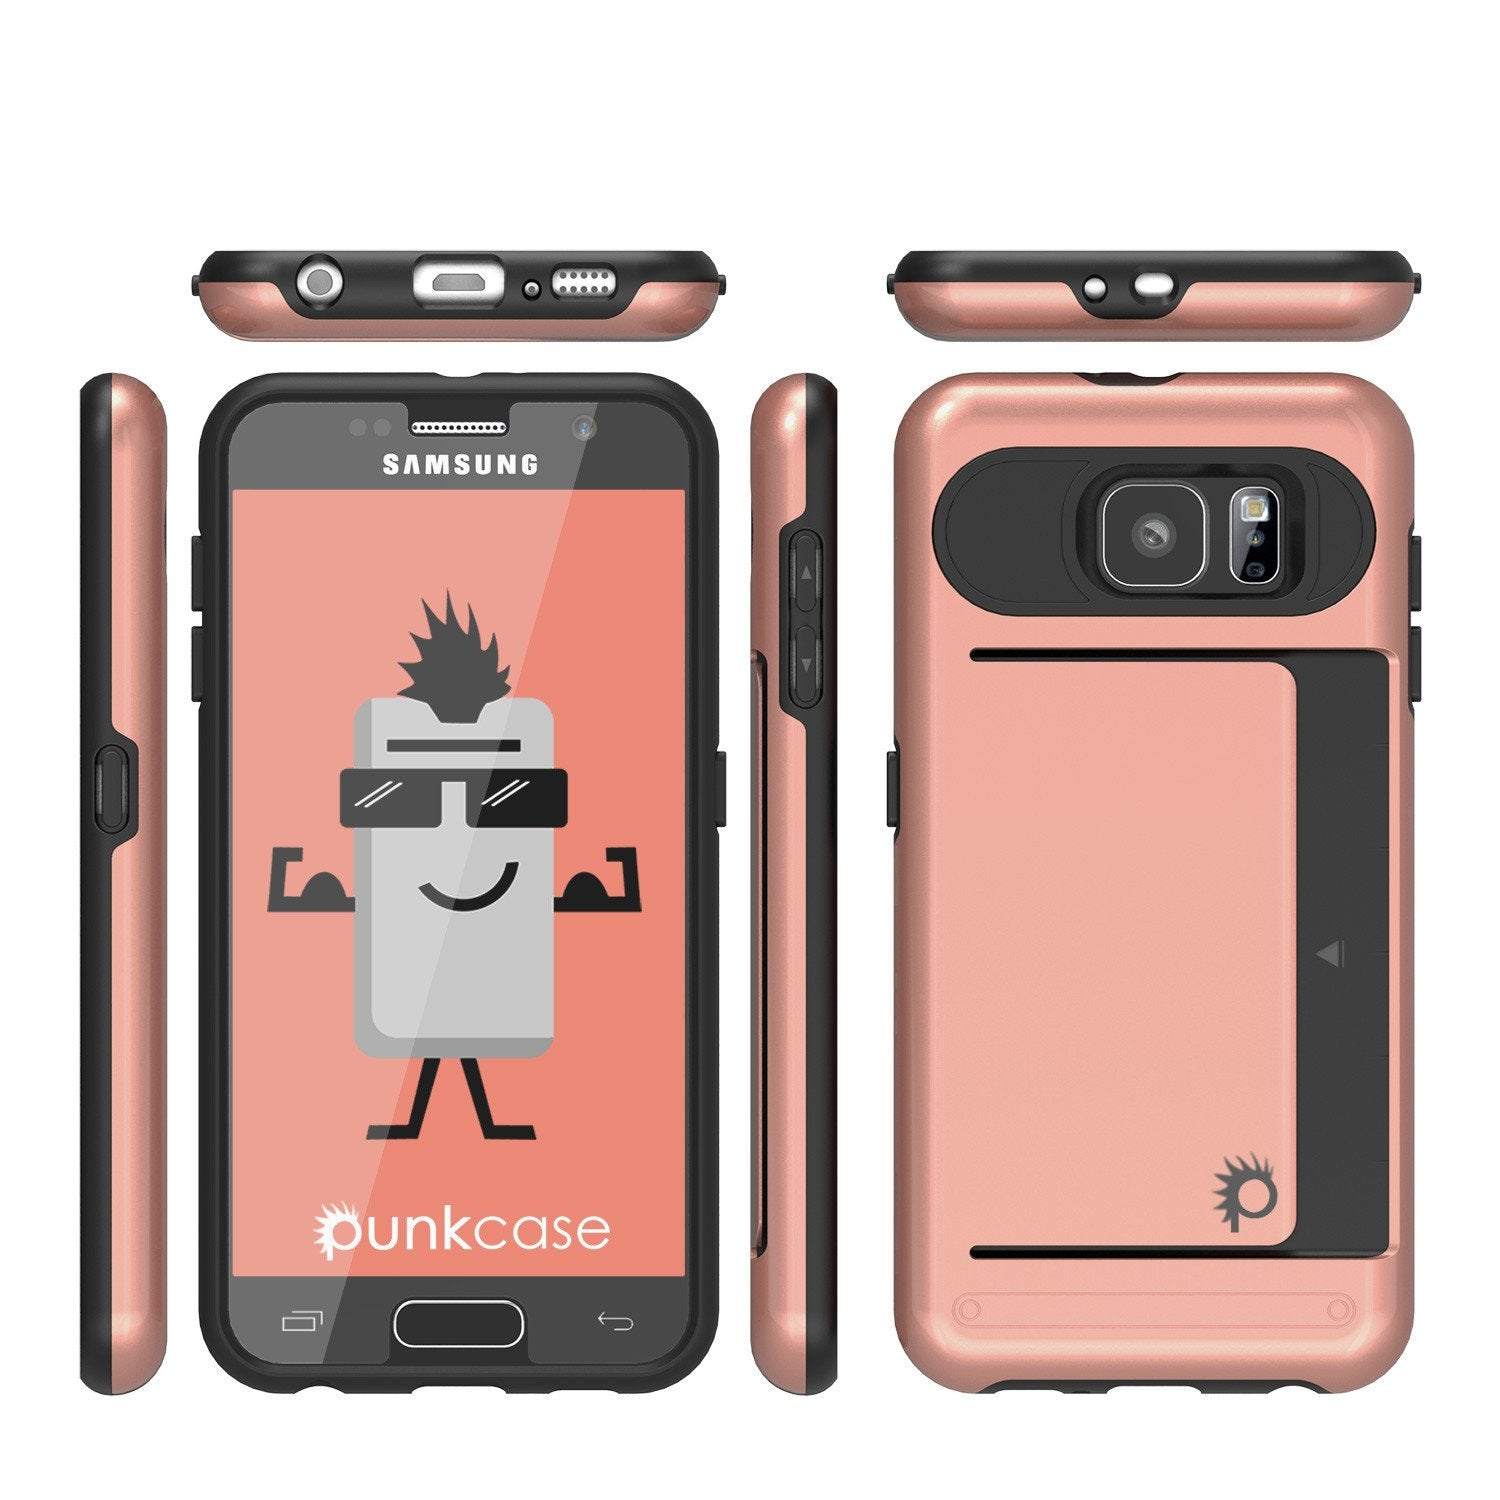 Galaxy S6 EDGE Plus Case PunkCase CLUTCH Rose Gold Series Slim Armor Soft Cover w/ Screen Protector - PunkCase NZ